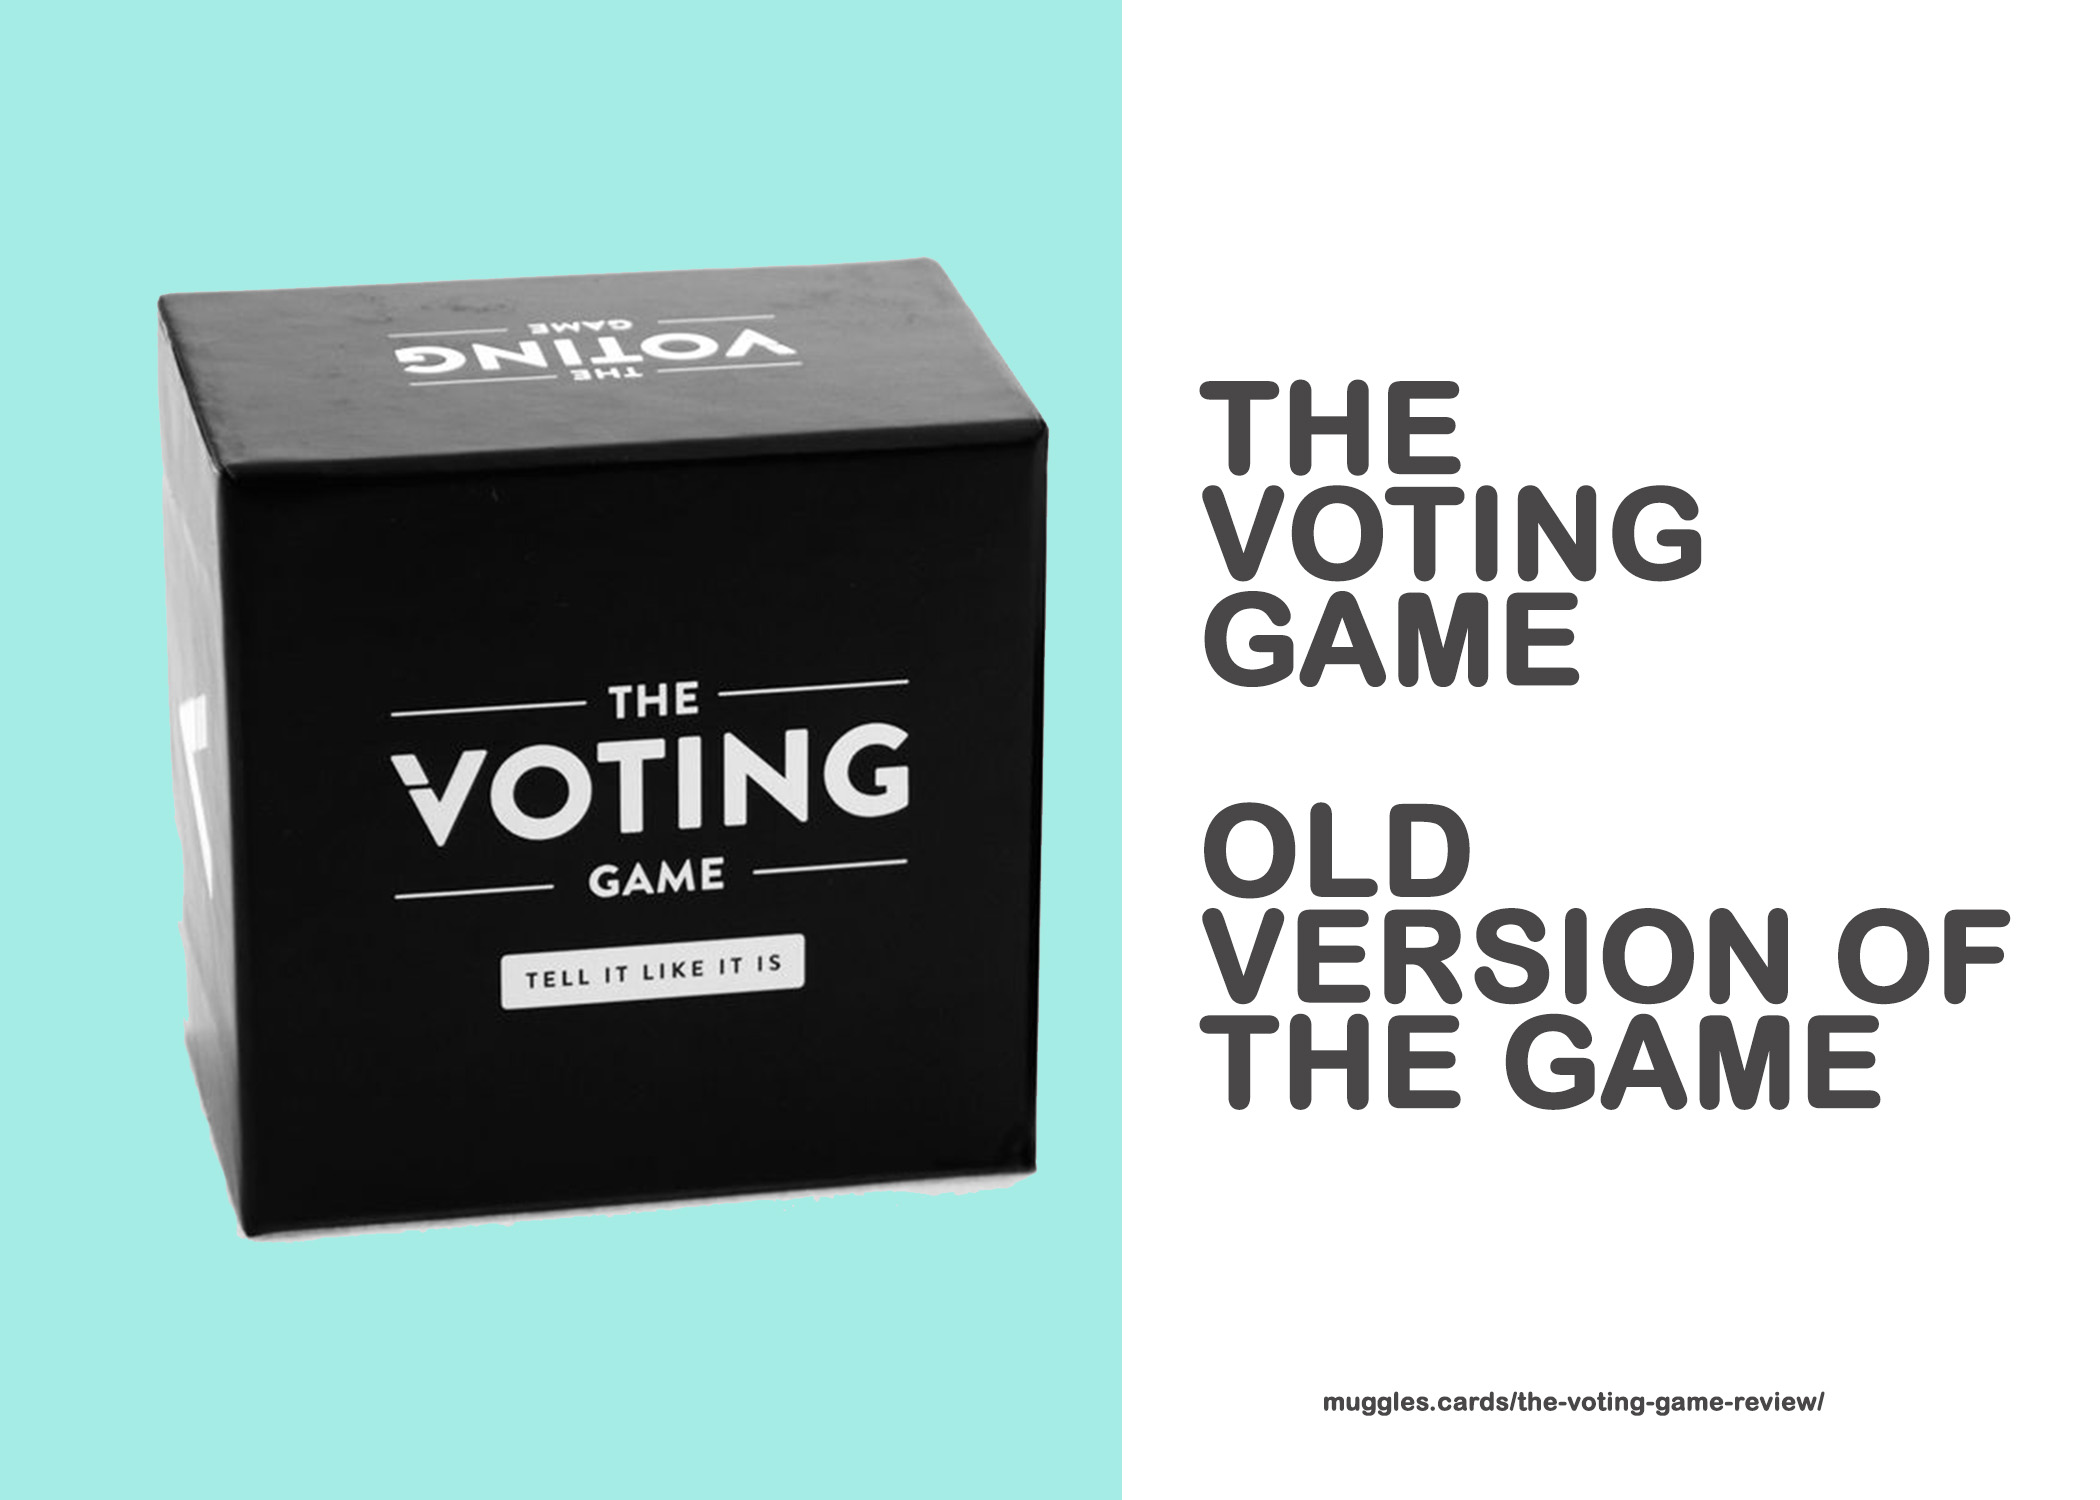 The Voting Game Old Version